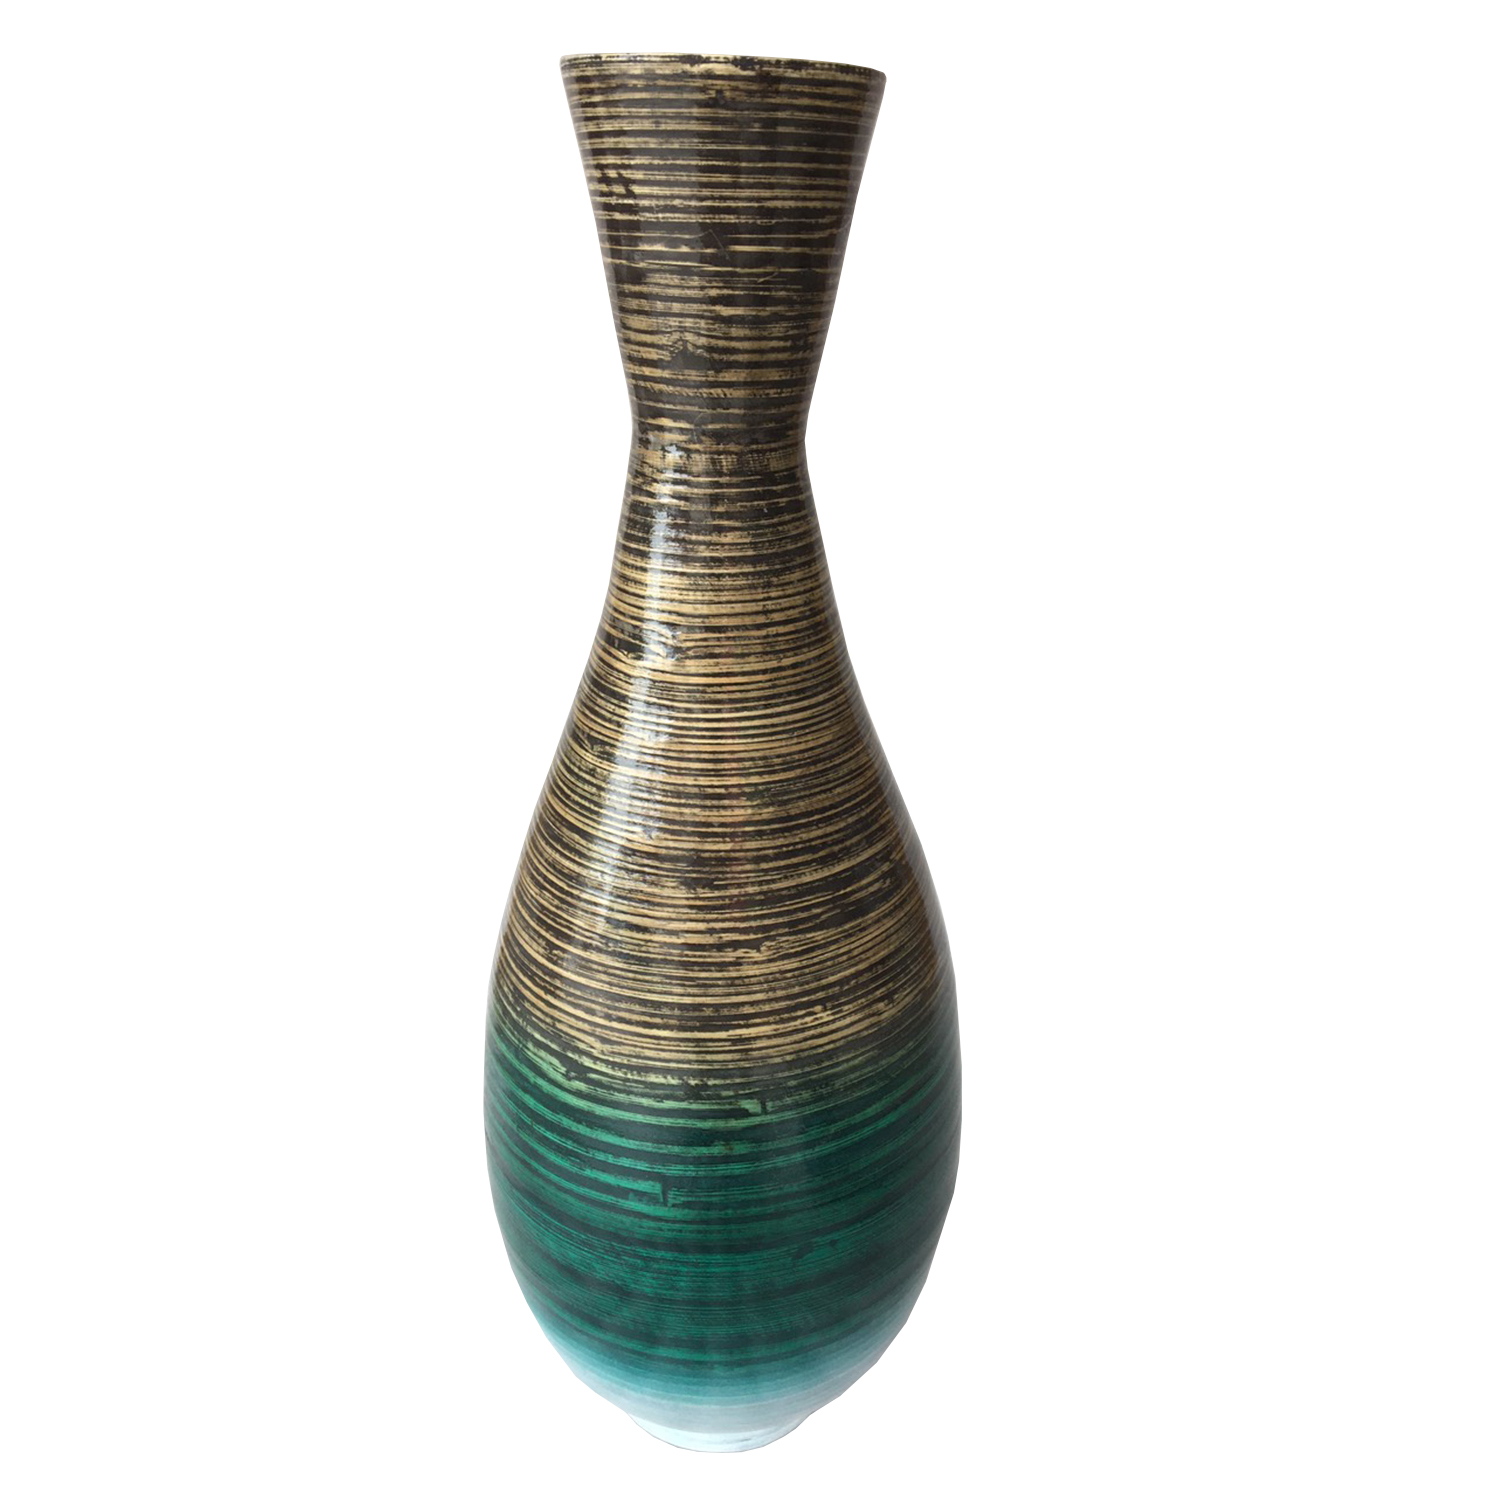 "27"" Spun Bamboo Floor Vase - Bamboo In Distressed Aqua"